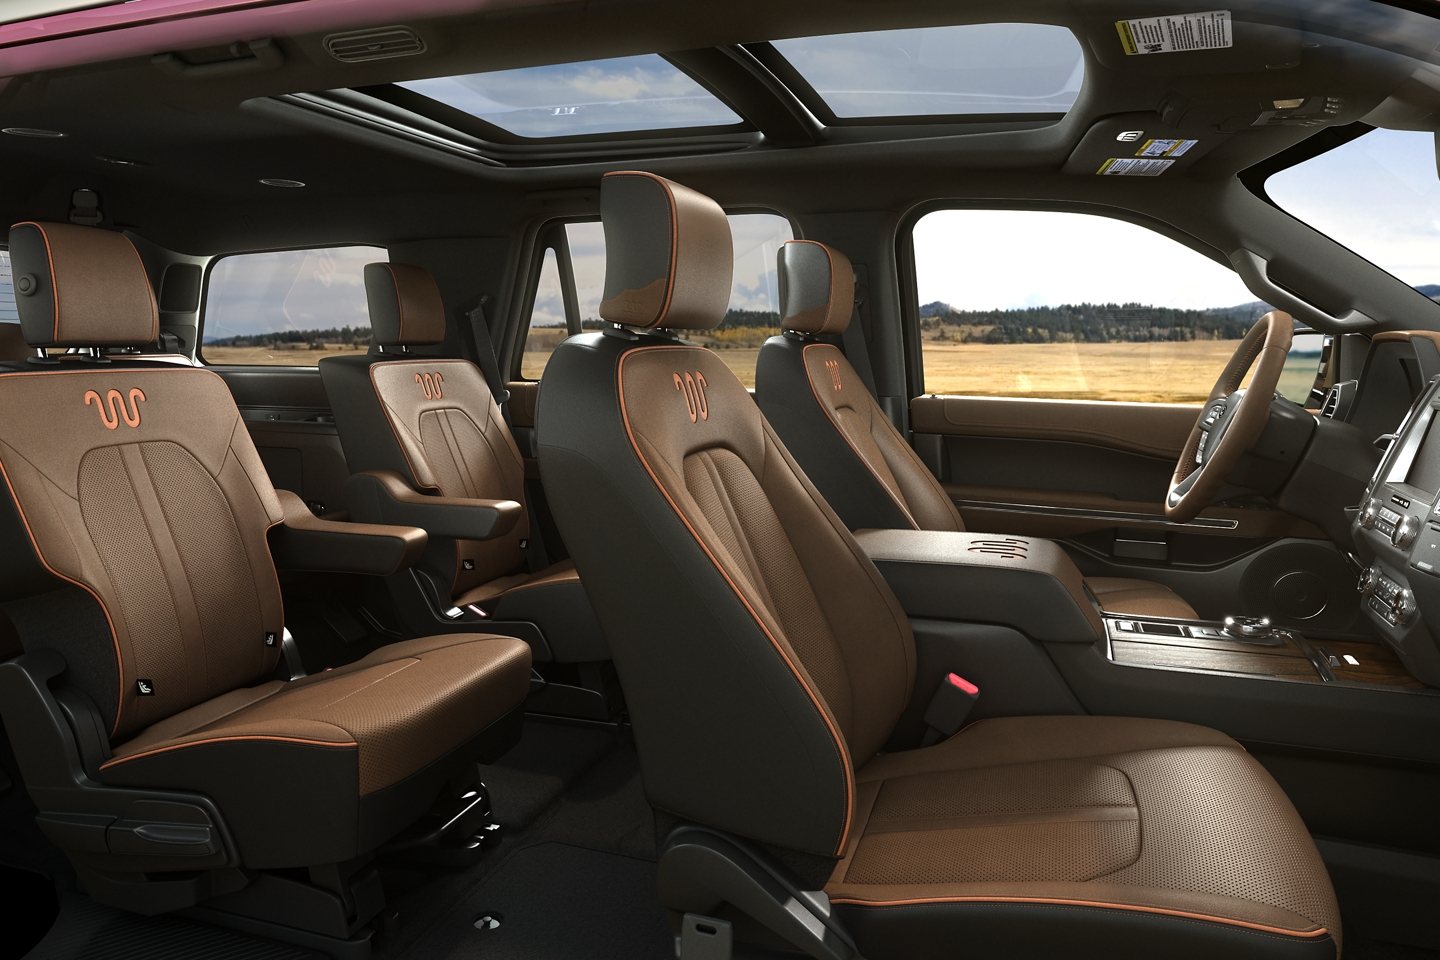 Spacious Seating in the 2020 Ford Expedition